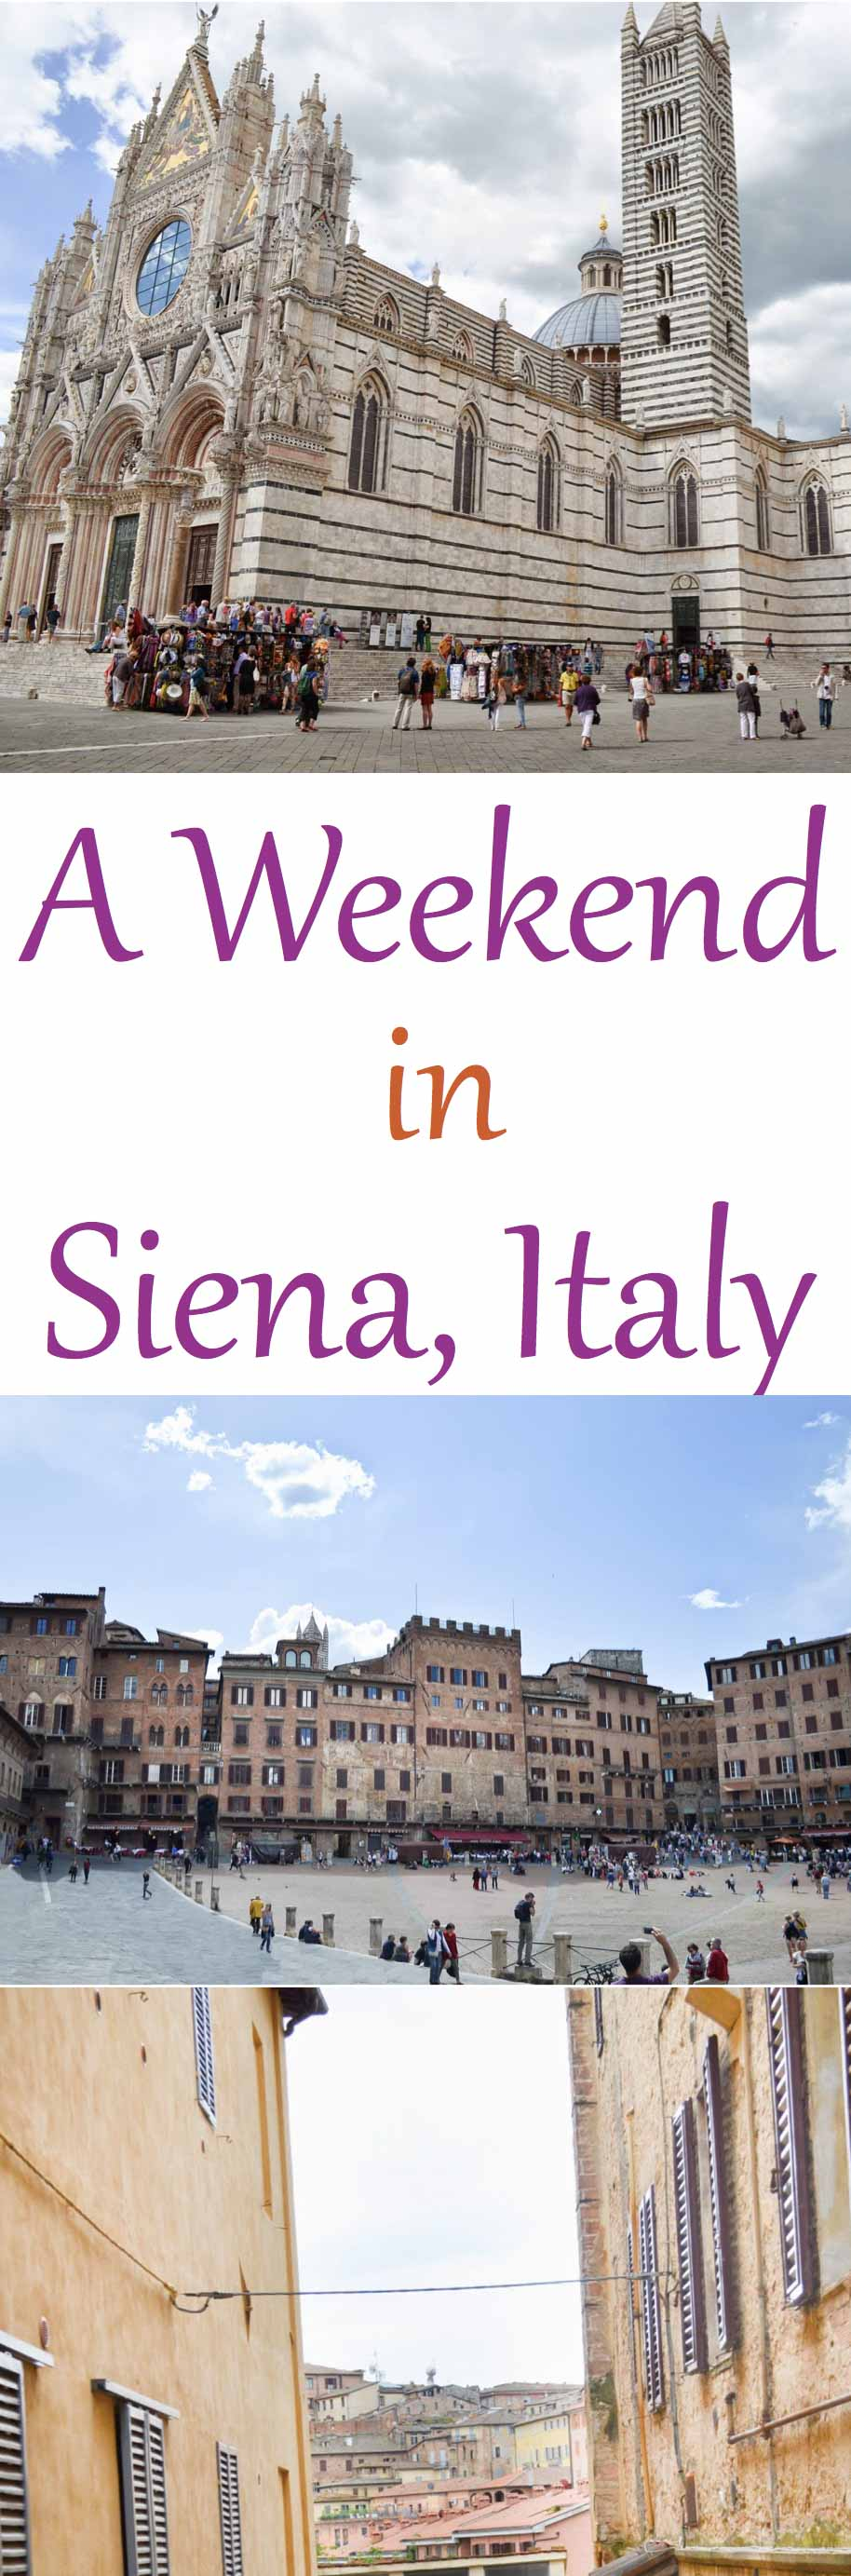 One Night in Siena Travel Guide #travel #travelblog #travelblogger #siena #italy #tuscany #sienaitaly #travelguide